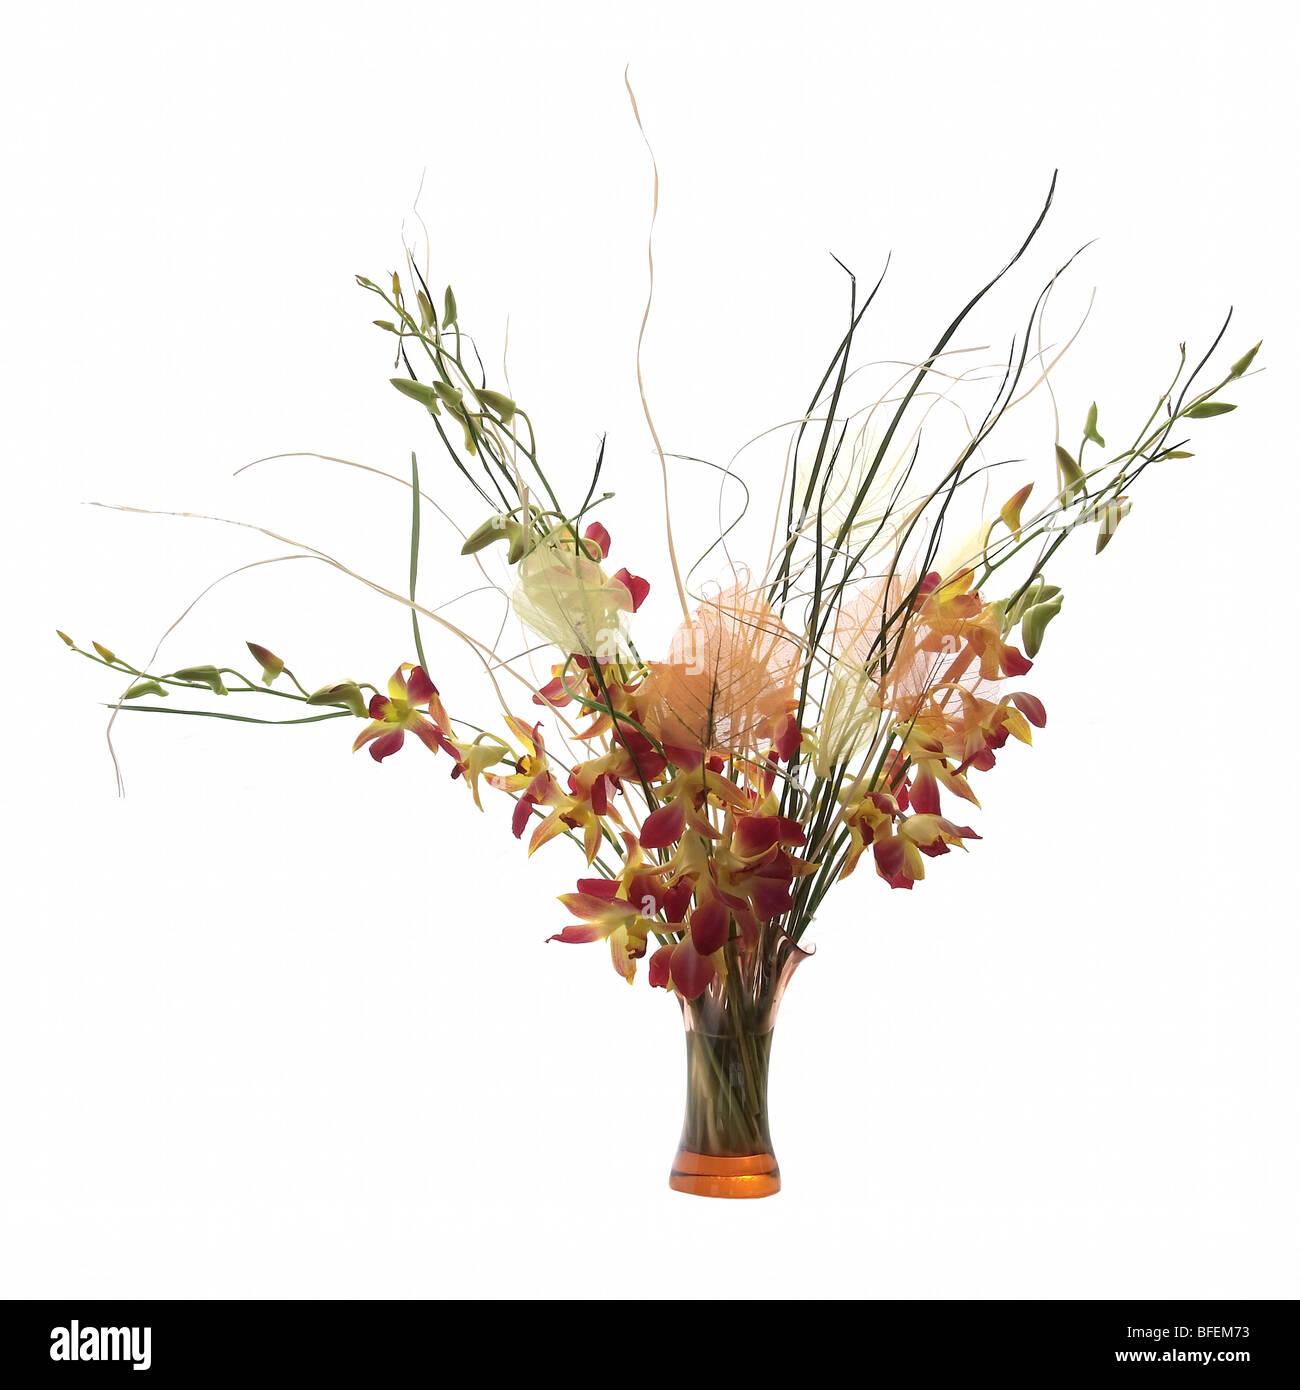 Bouquet of orchids in vase isolated on white background stock bouquet of orchids in vase isolated on white background reviewsmspy